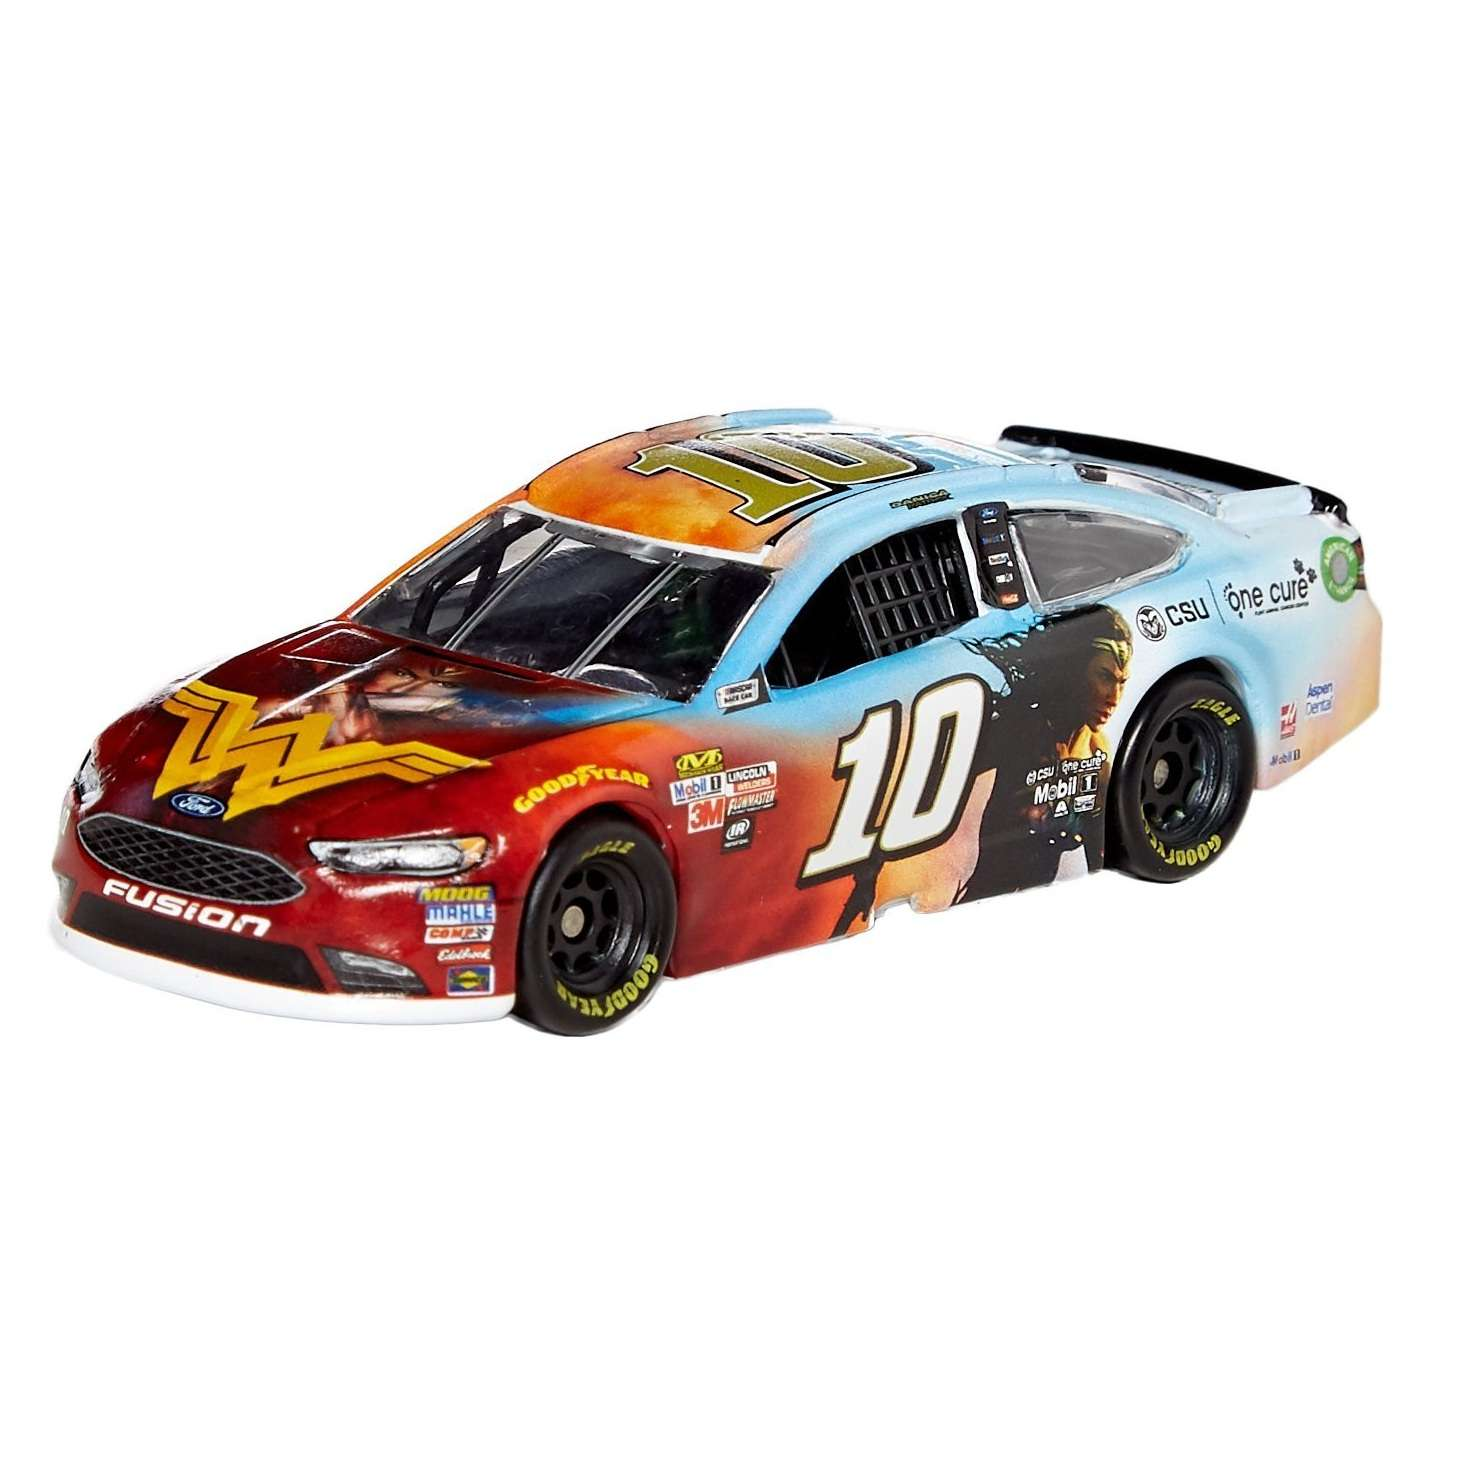 Diecast Car 1/64: Nascar 2017 - Ford Fusion Wonder Woman (Danica Patrick) Photo